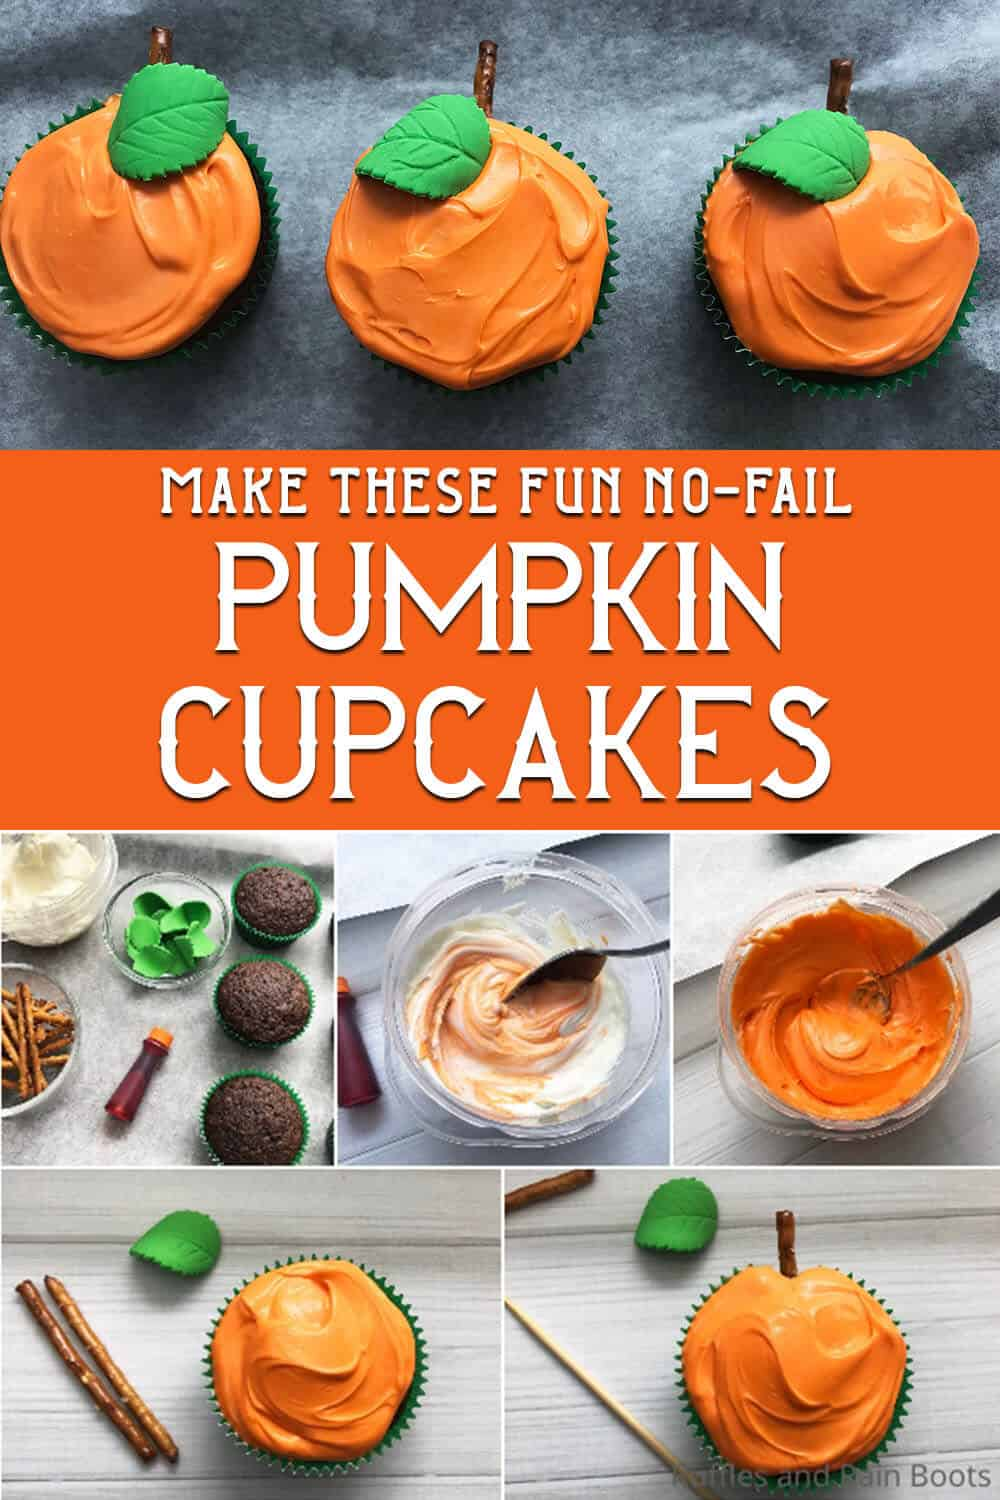 photo collage of easy cupcake decorating idea for pumpkin cupcakes with text which reads make these fun no-fail pumpkin cupcakes